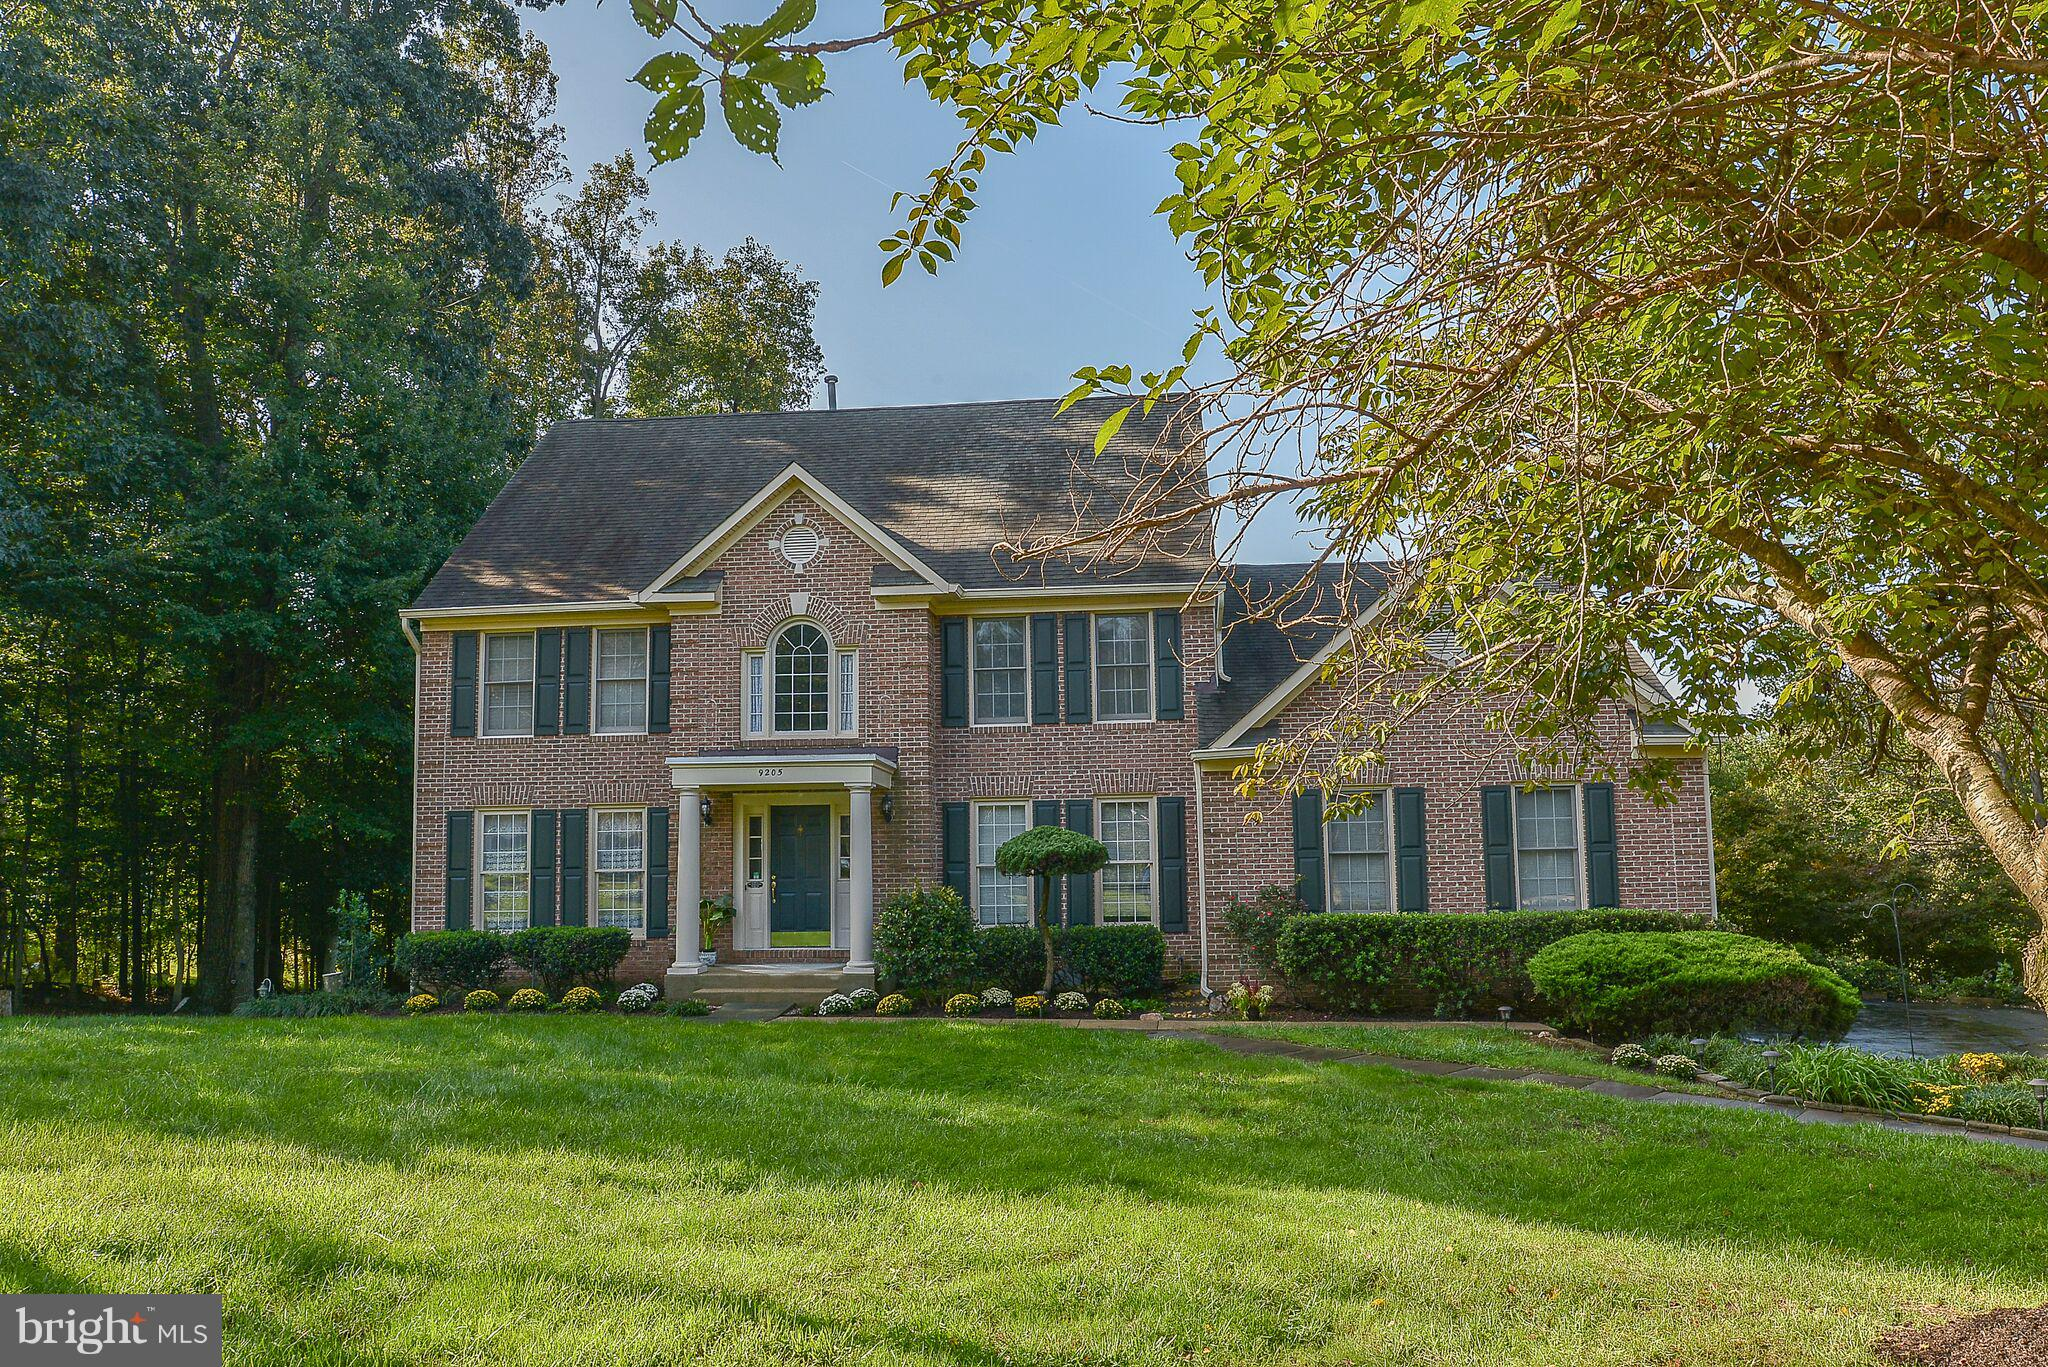 Rare opportunity in sought-after Southpointe Estates. With over 4,000 sq ft of living space, this beautiful brick colonial sits on a gorgeously landscaped 0.88 acres, offering a tree-lined driveway, and a private backyard with views of wildlife and Elk Horn Creek. Minutes to shopping, restaurants, golf, trails, and Laurel Hill equestrian center. Conveniently located near all major roadways.